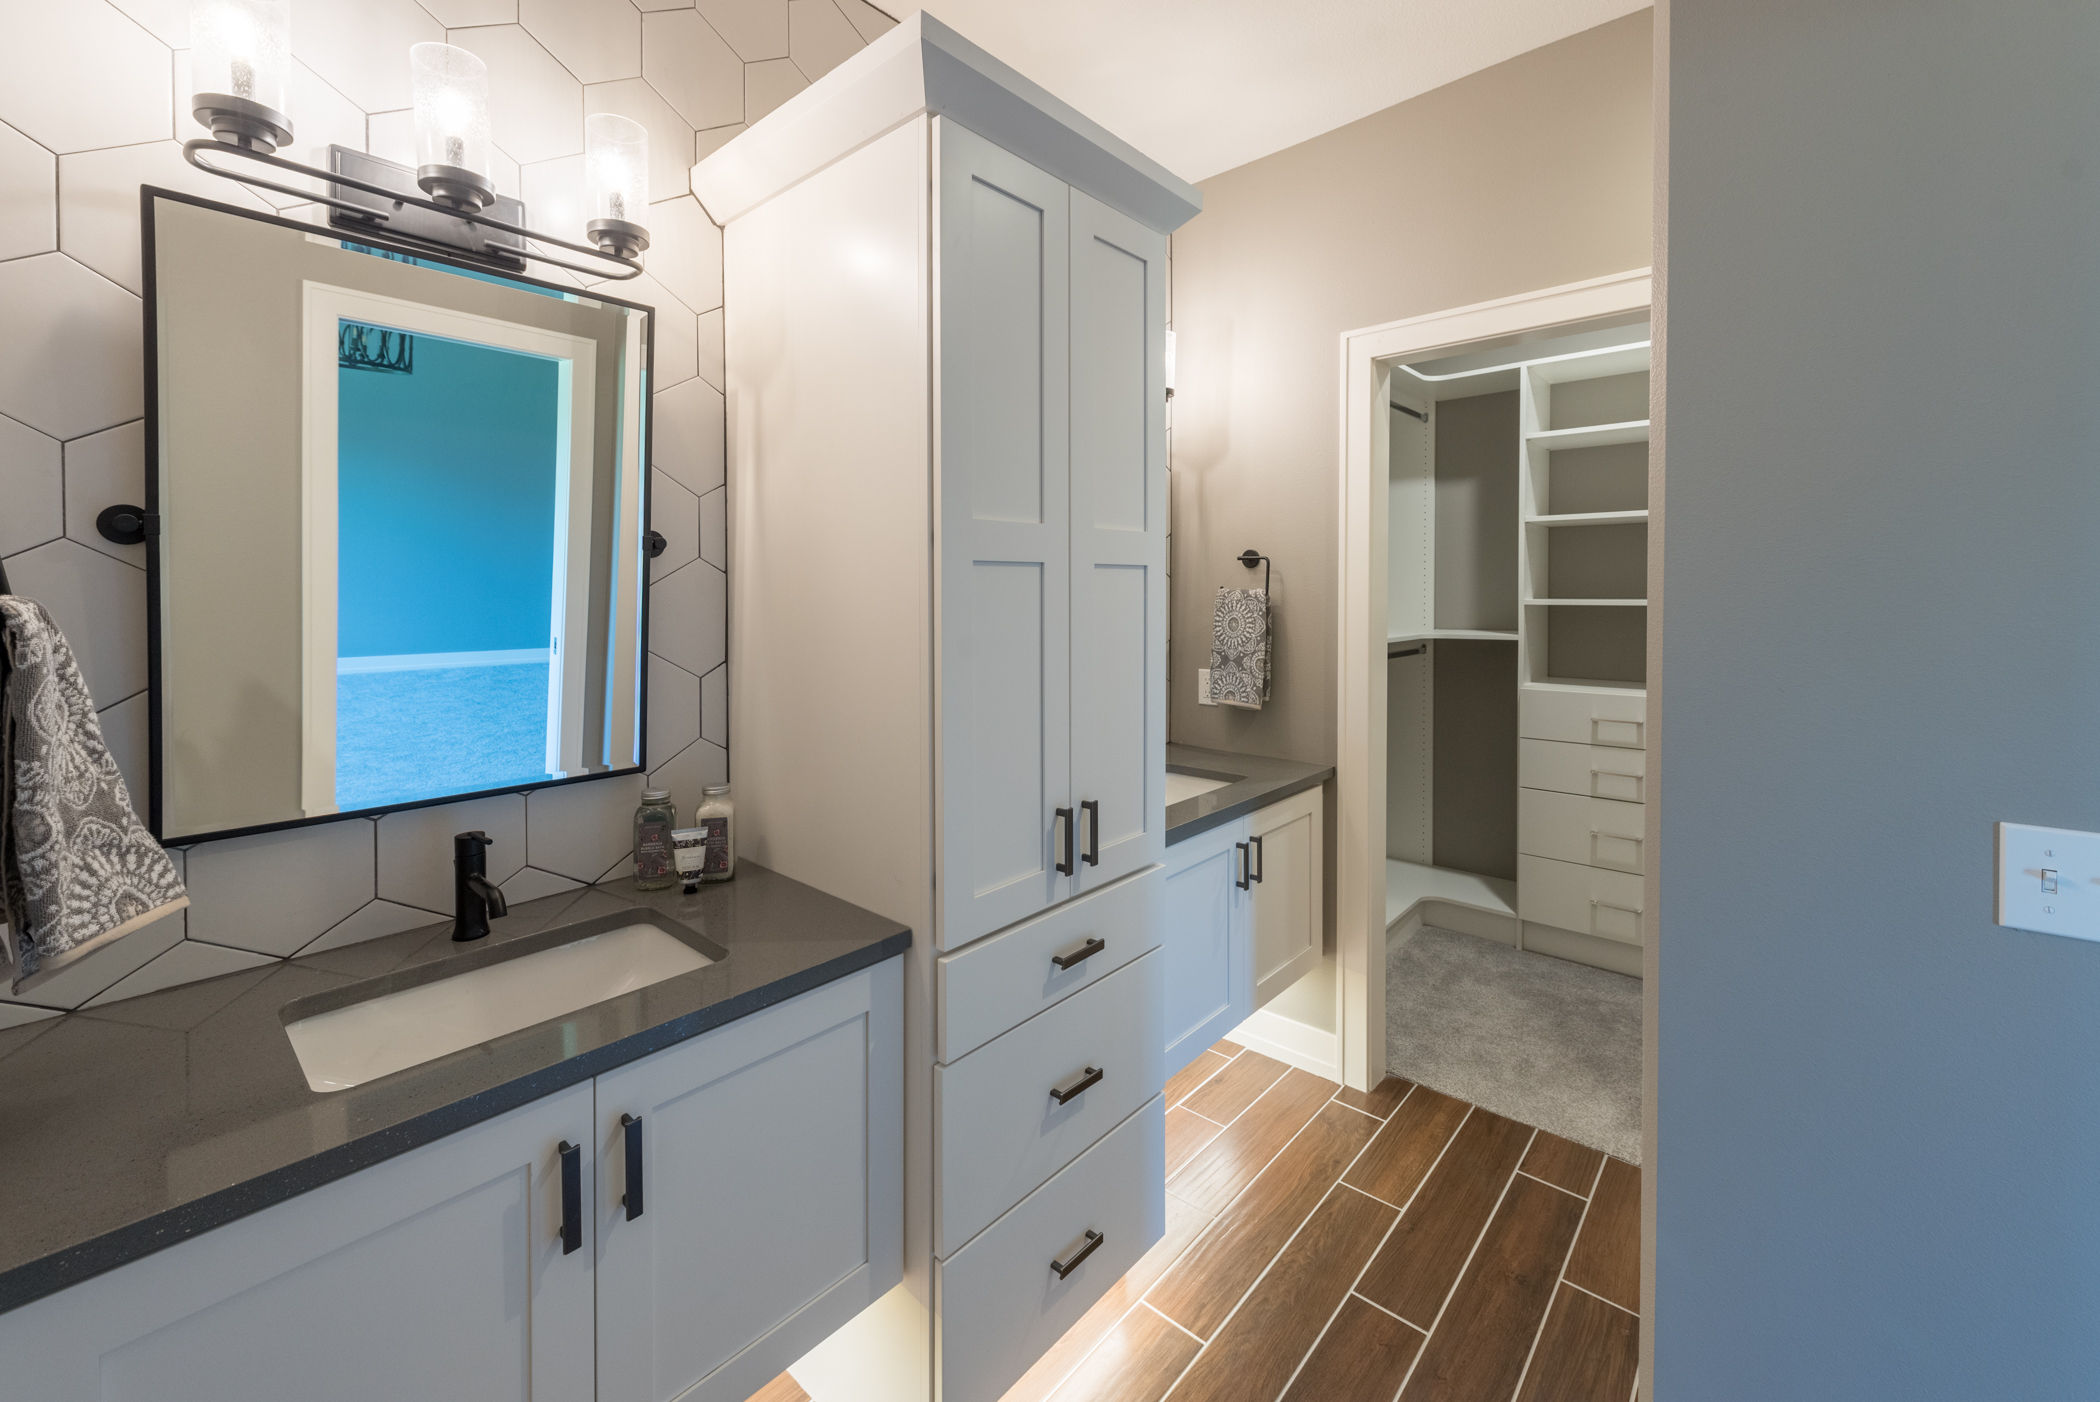 Contemporary bathroom with white cabinetry and undermount lighting